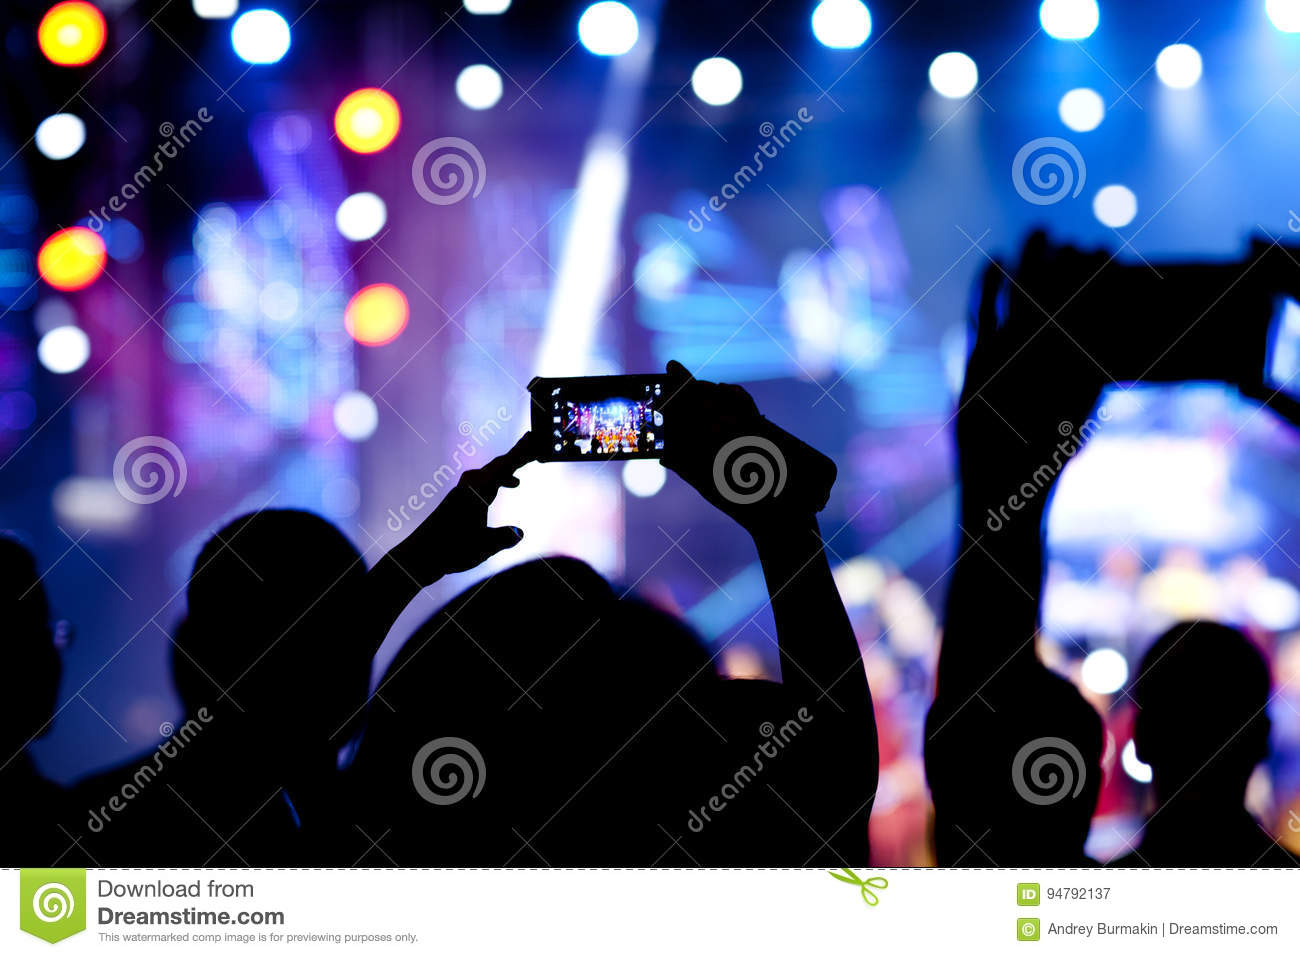 People at concert shooting video